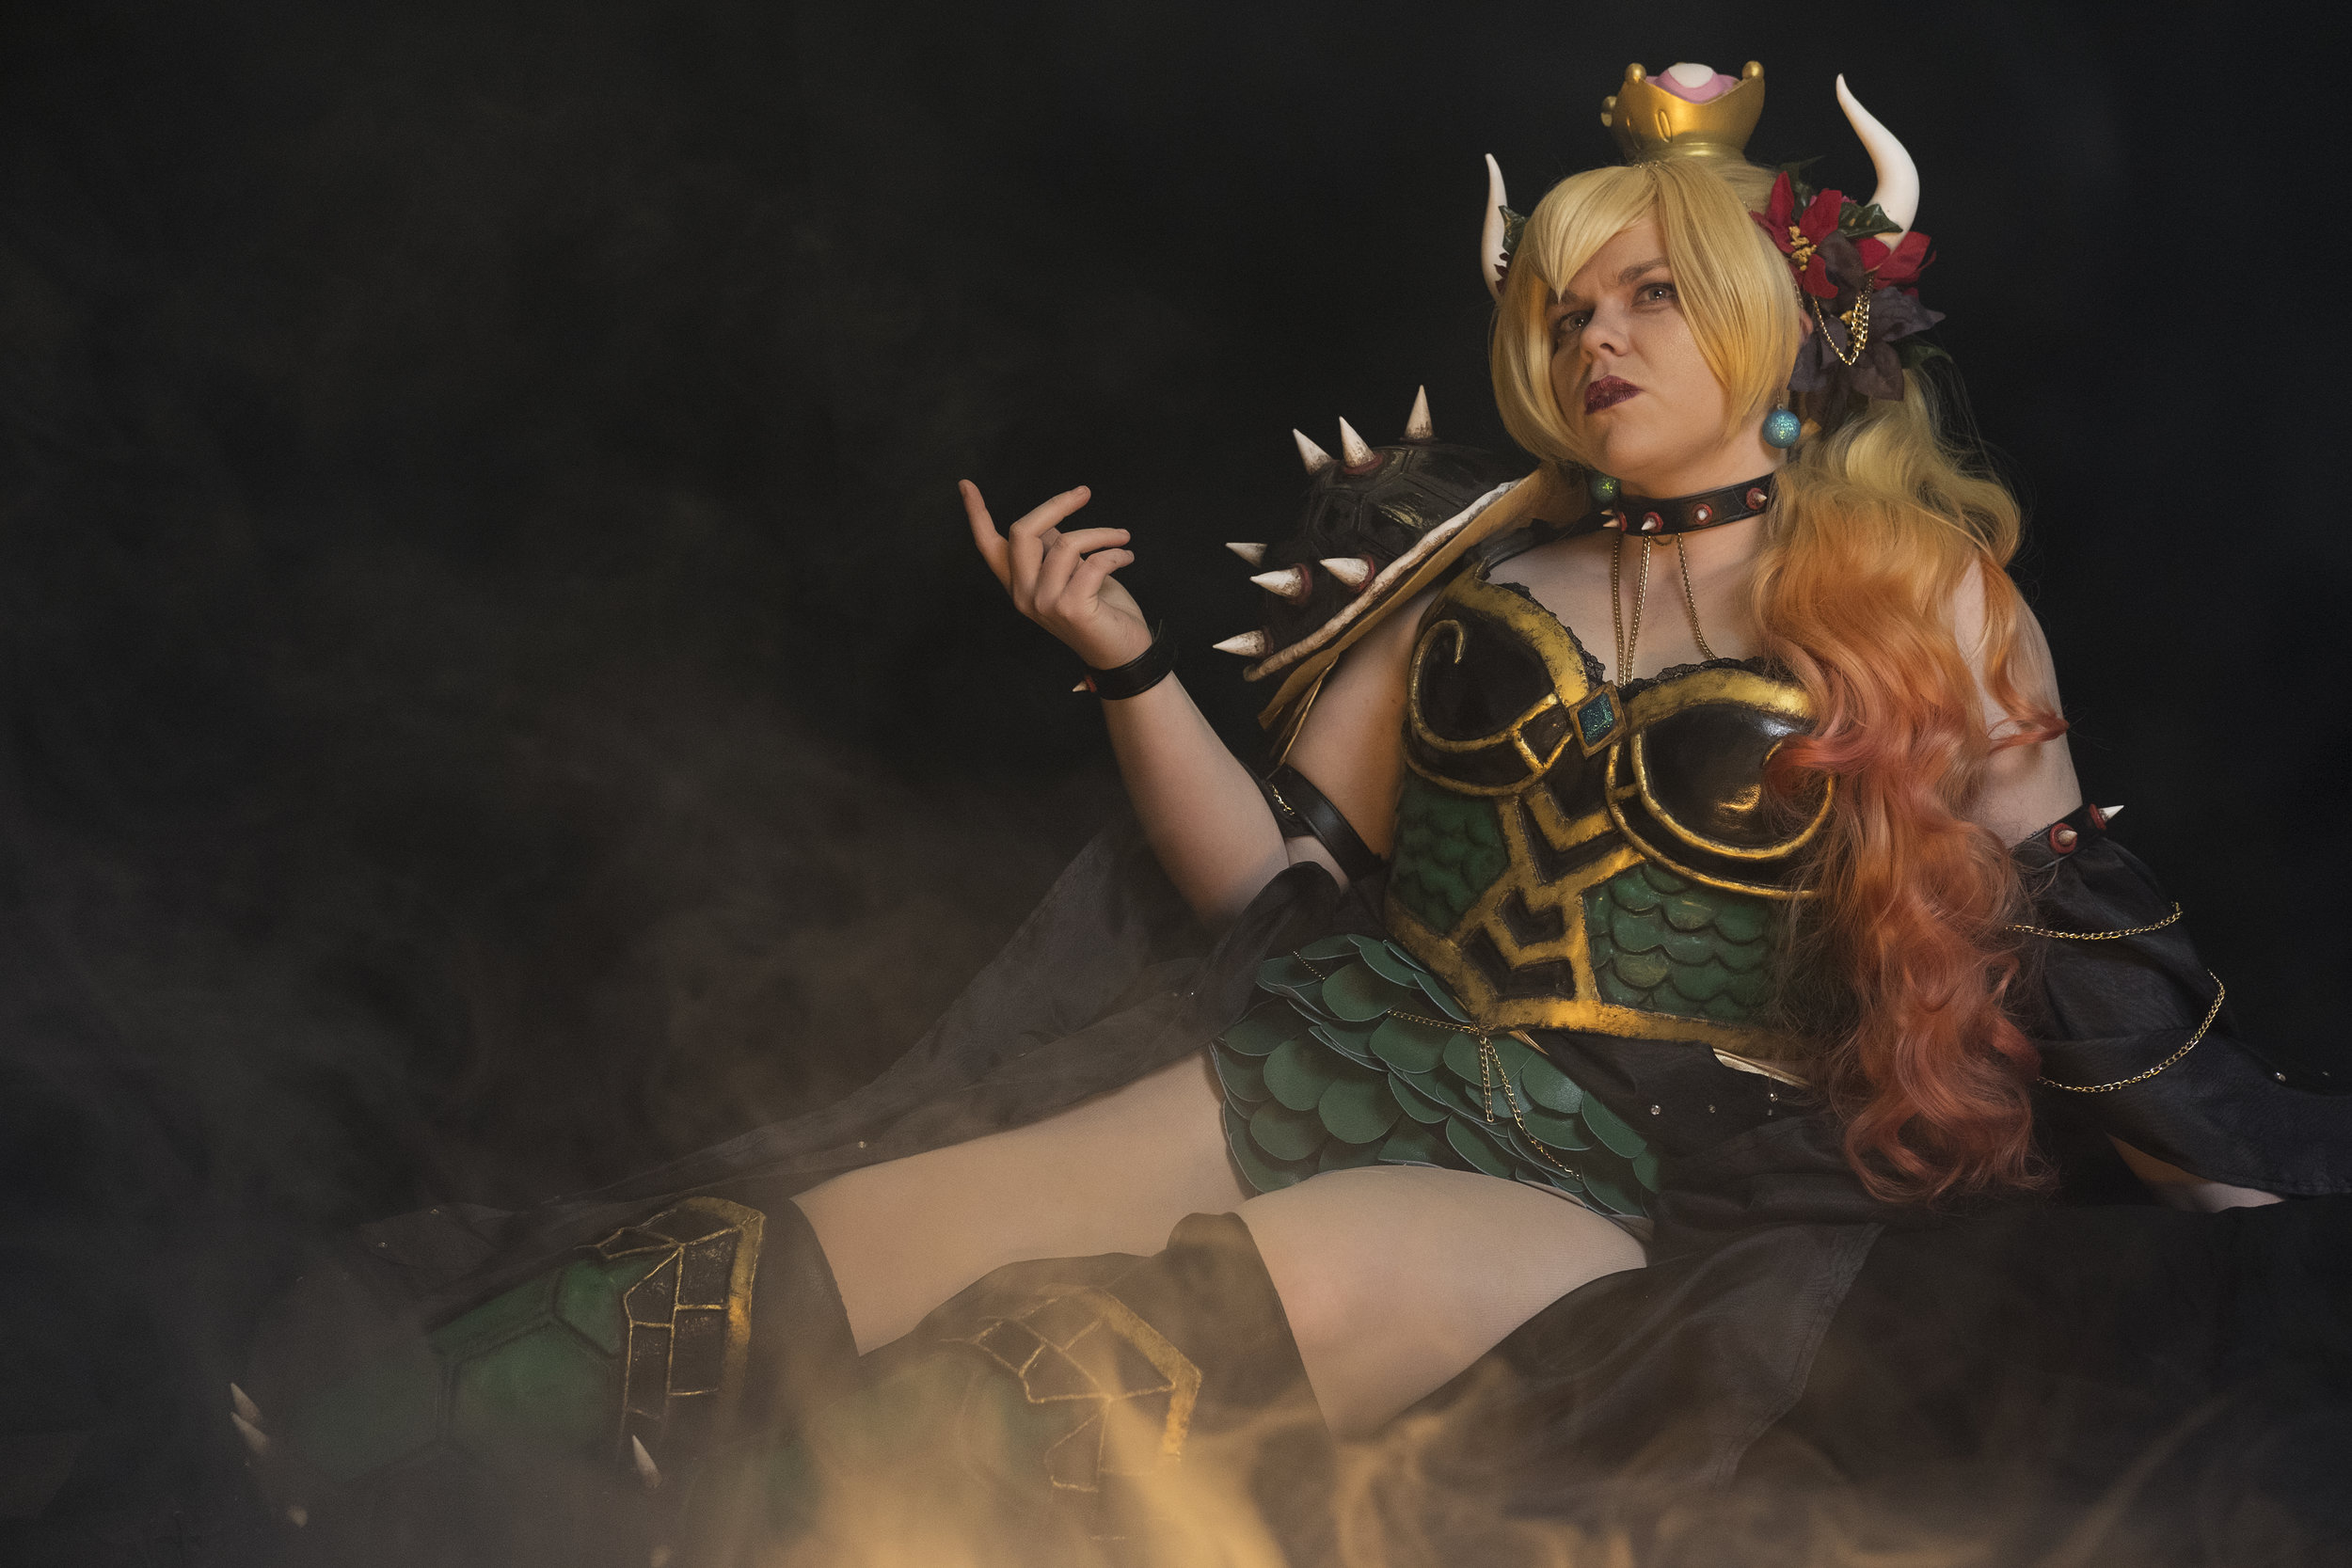 Tacocat Cosplay cosplaying as Hannah Alexander's Bowsette